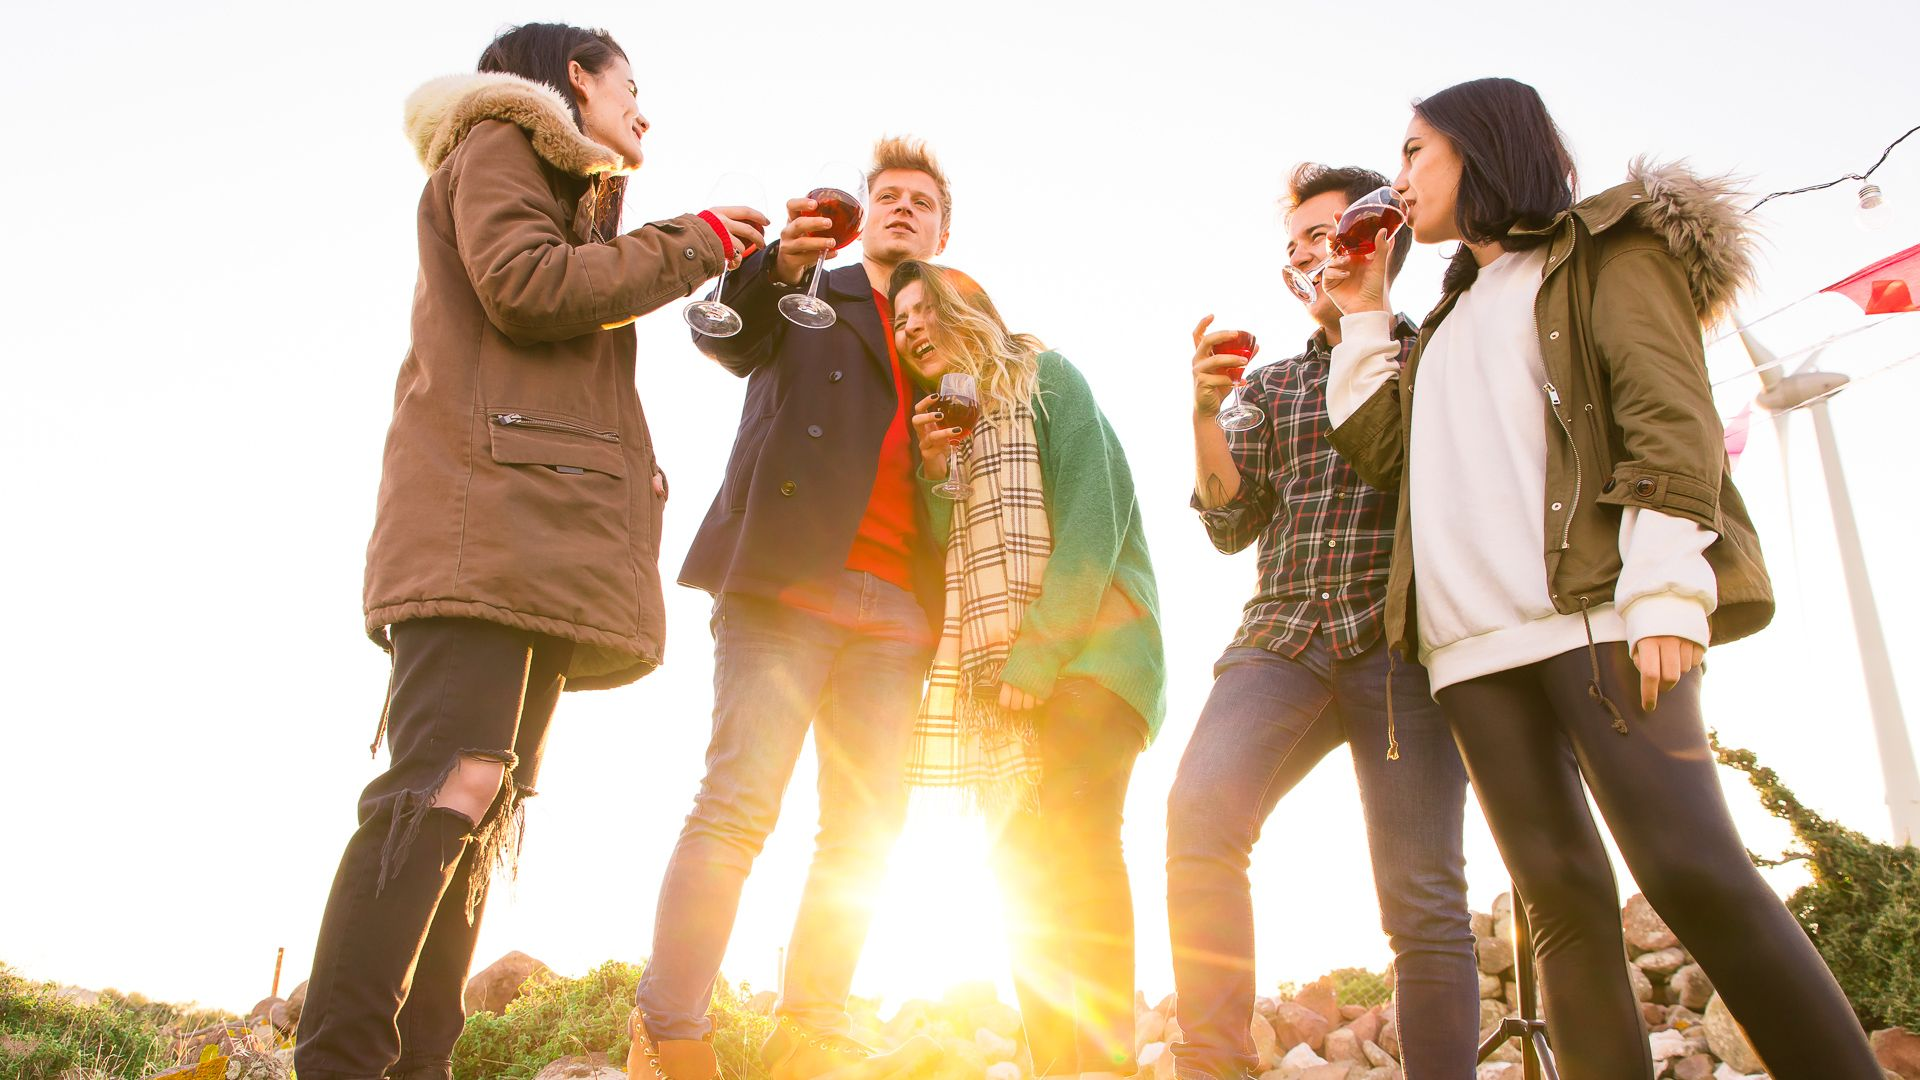 Cheerful friends having fun by the campfire during the autumn.